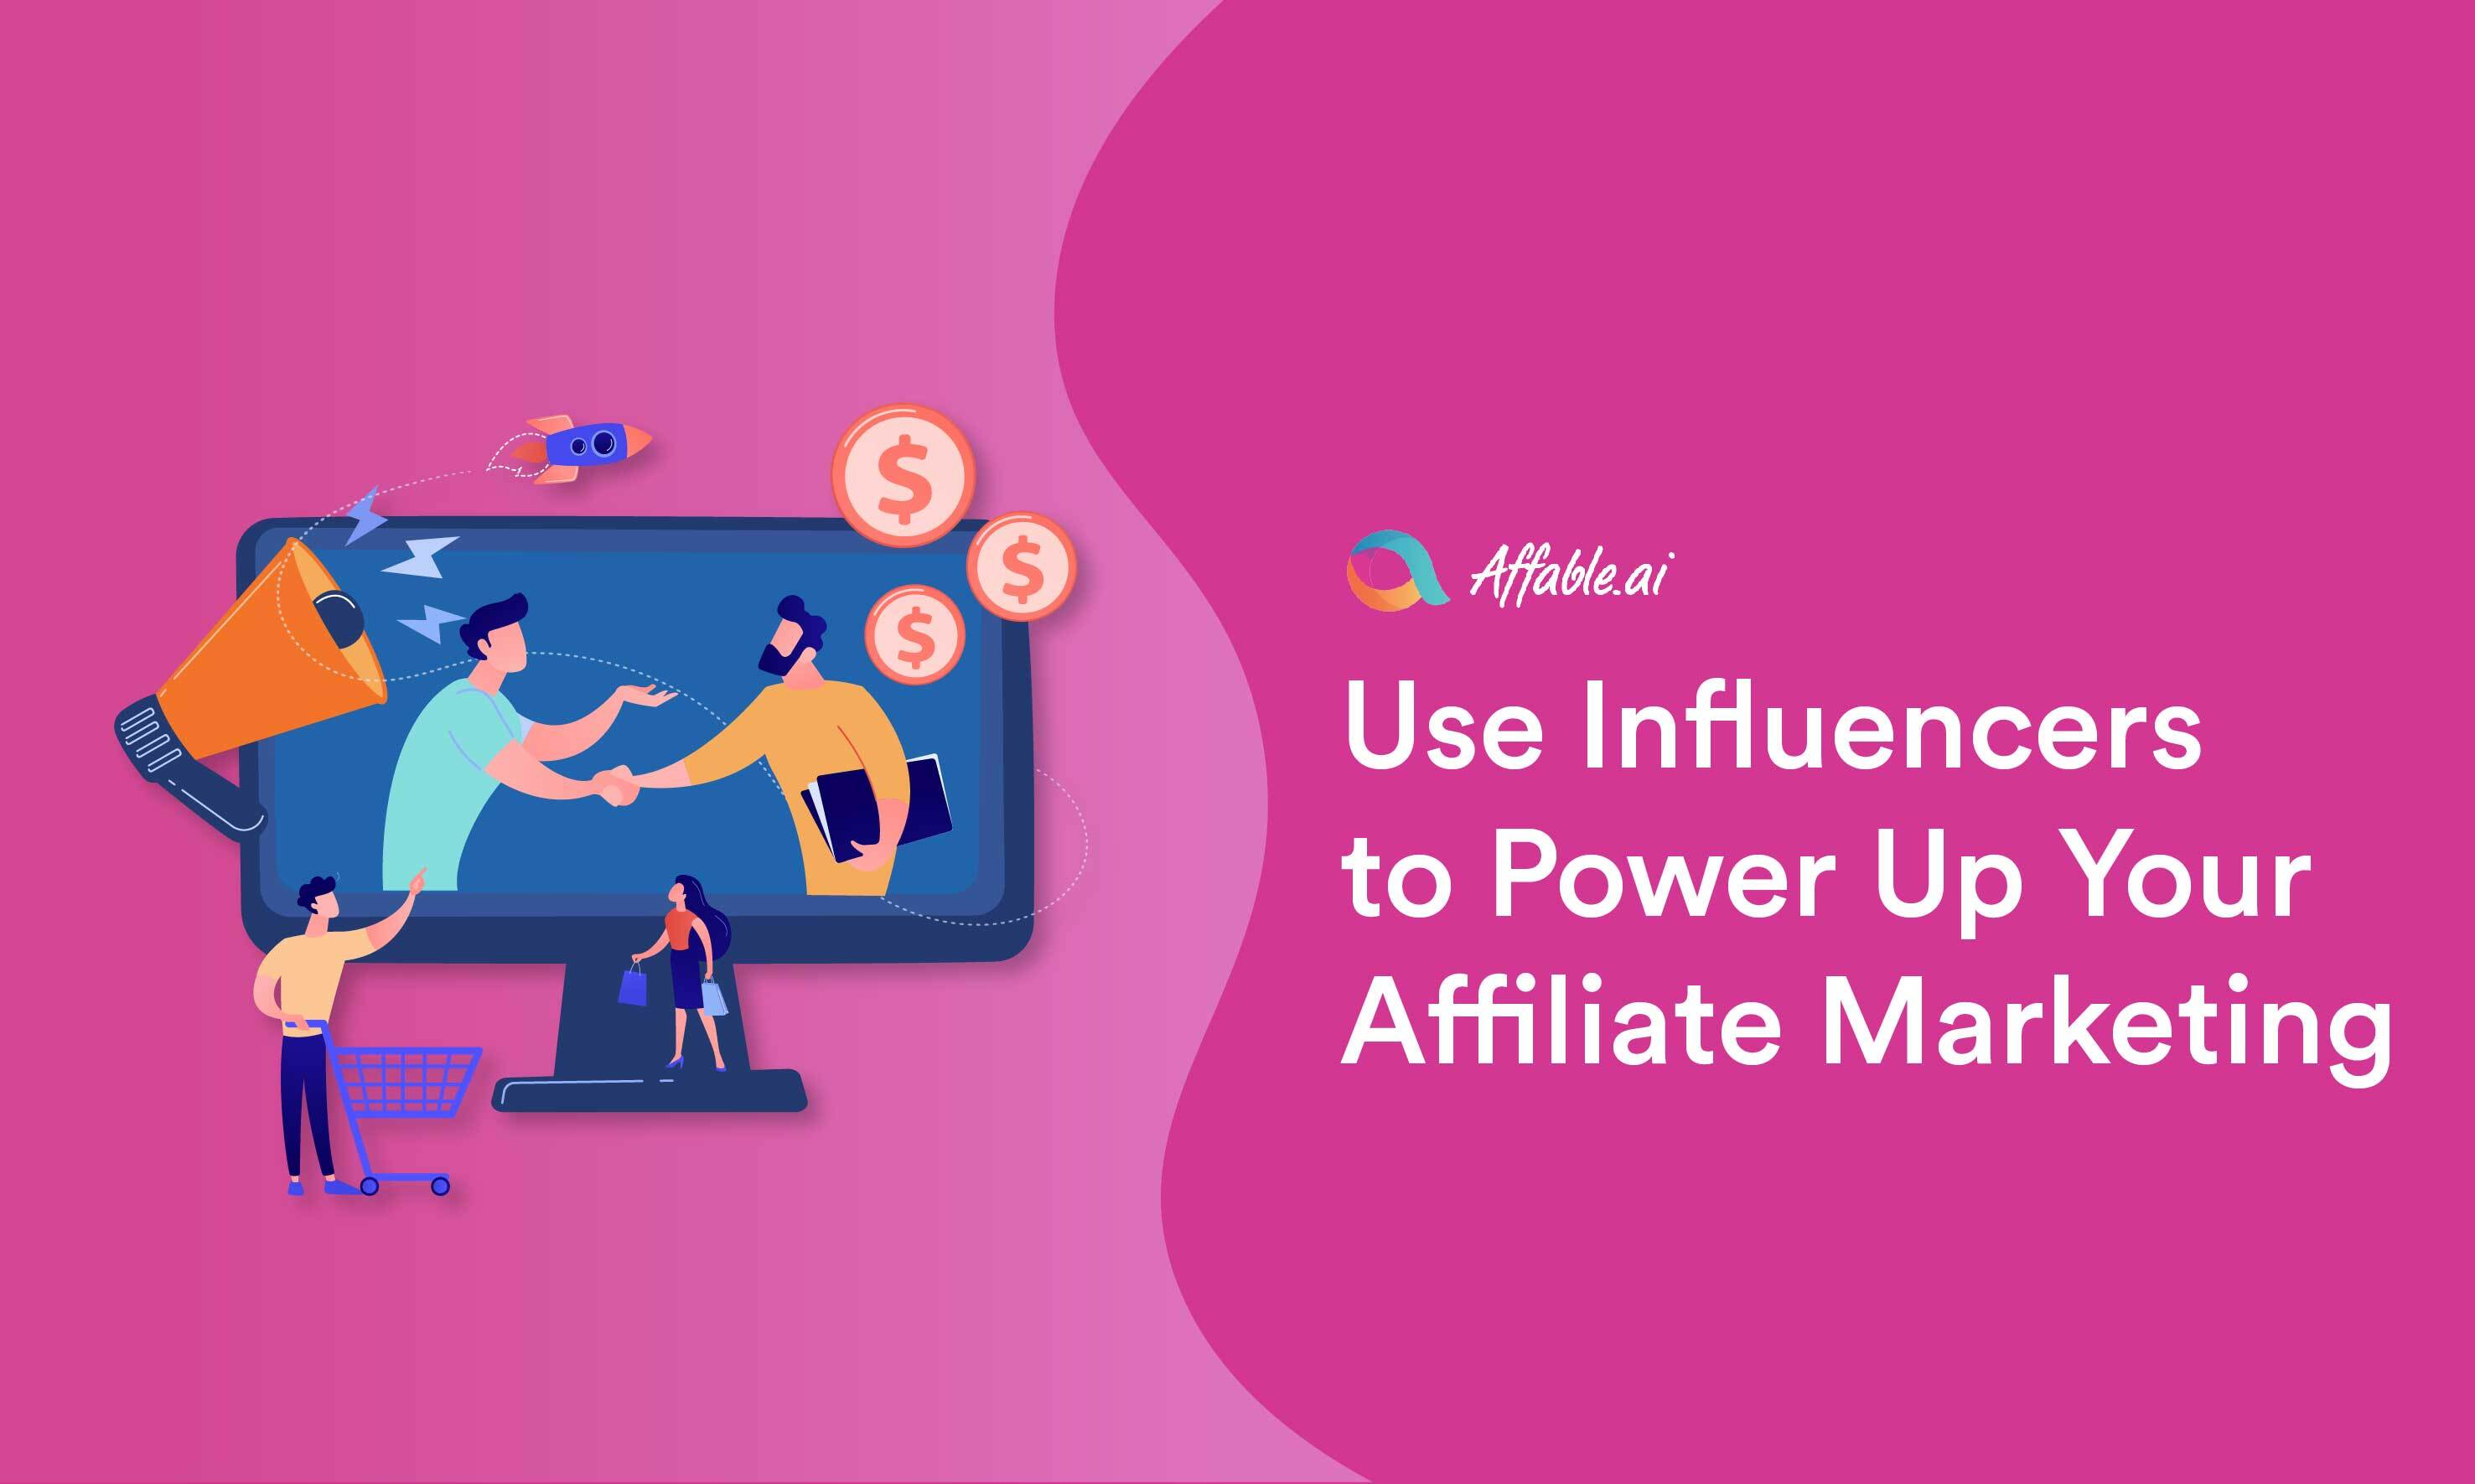 Use Influencers to Power Up Your Affiliate Marketing